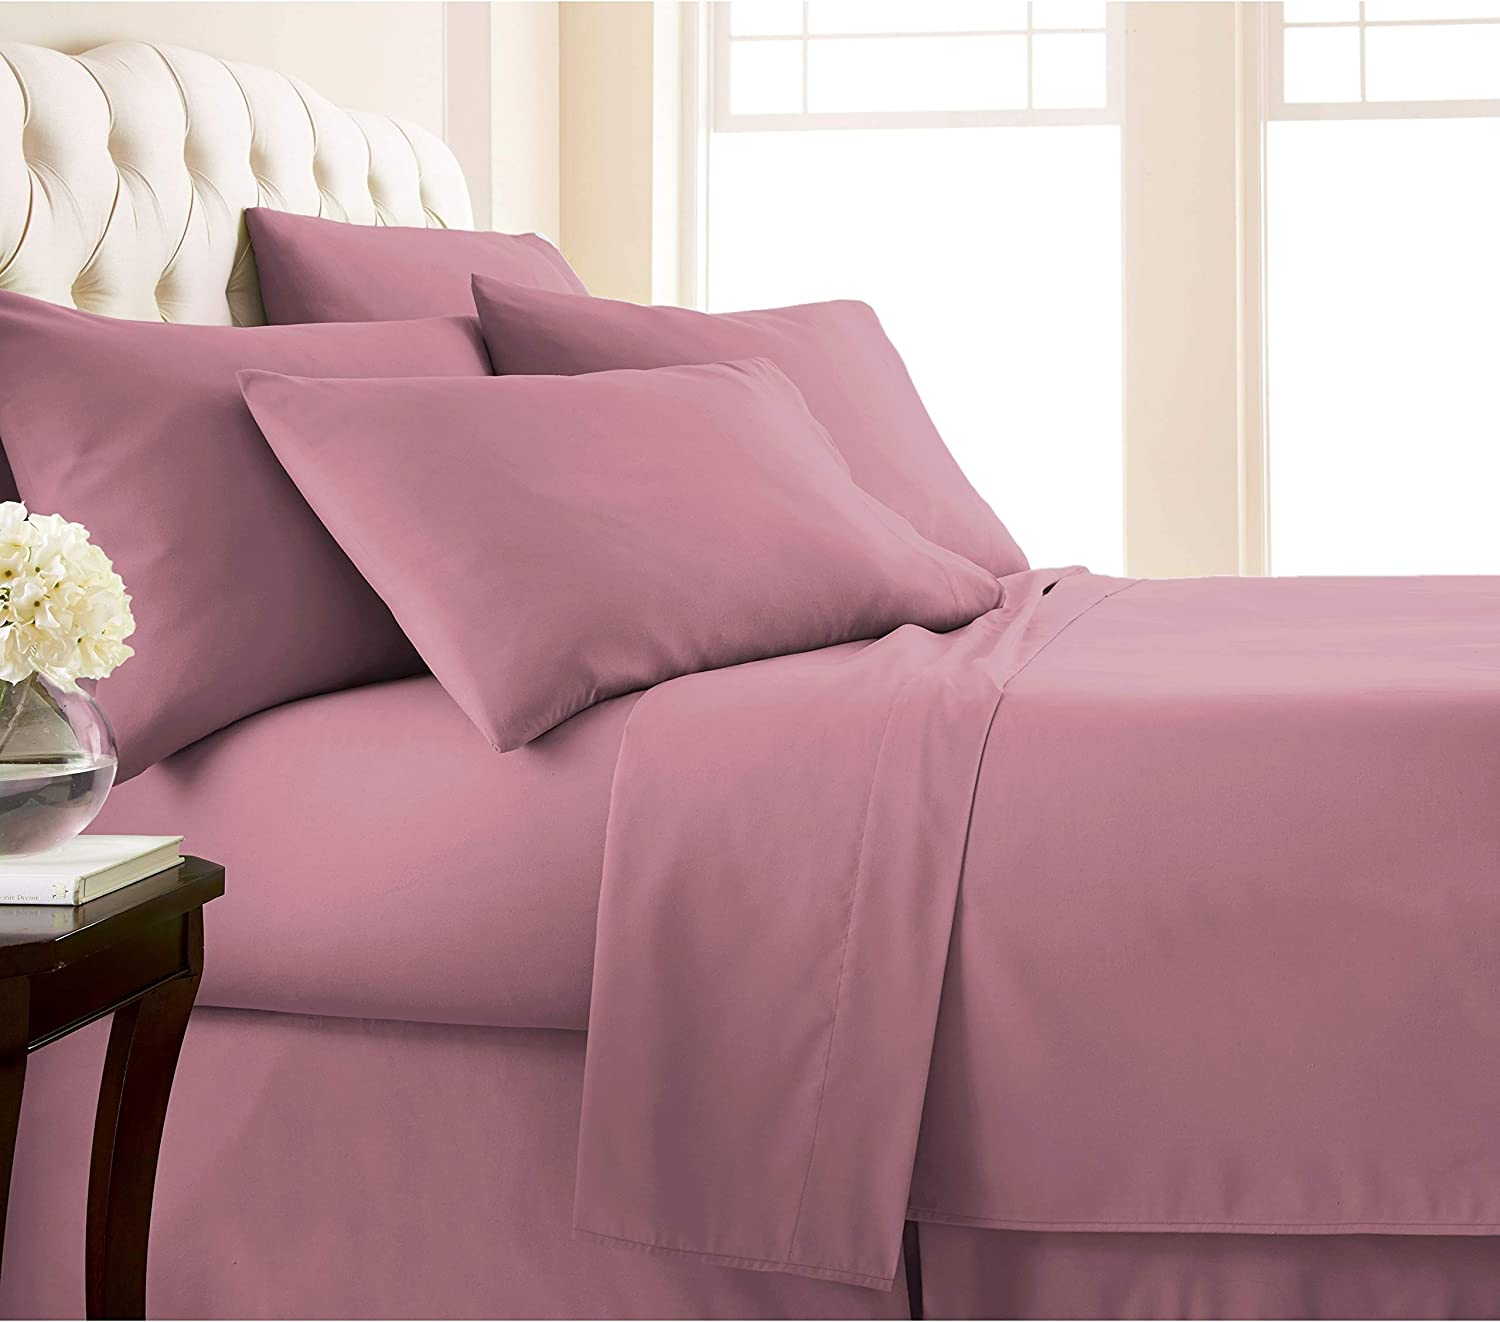 - Amazon.com: MISC 4 Piece The Best Rose Sheets Twin Size Set